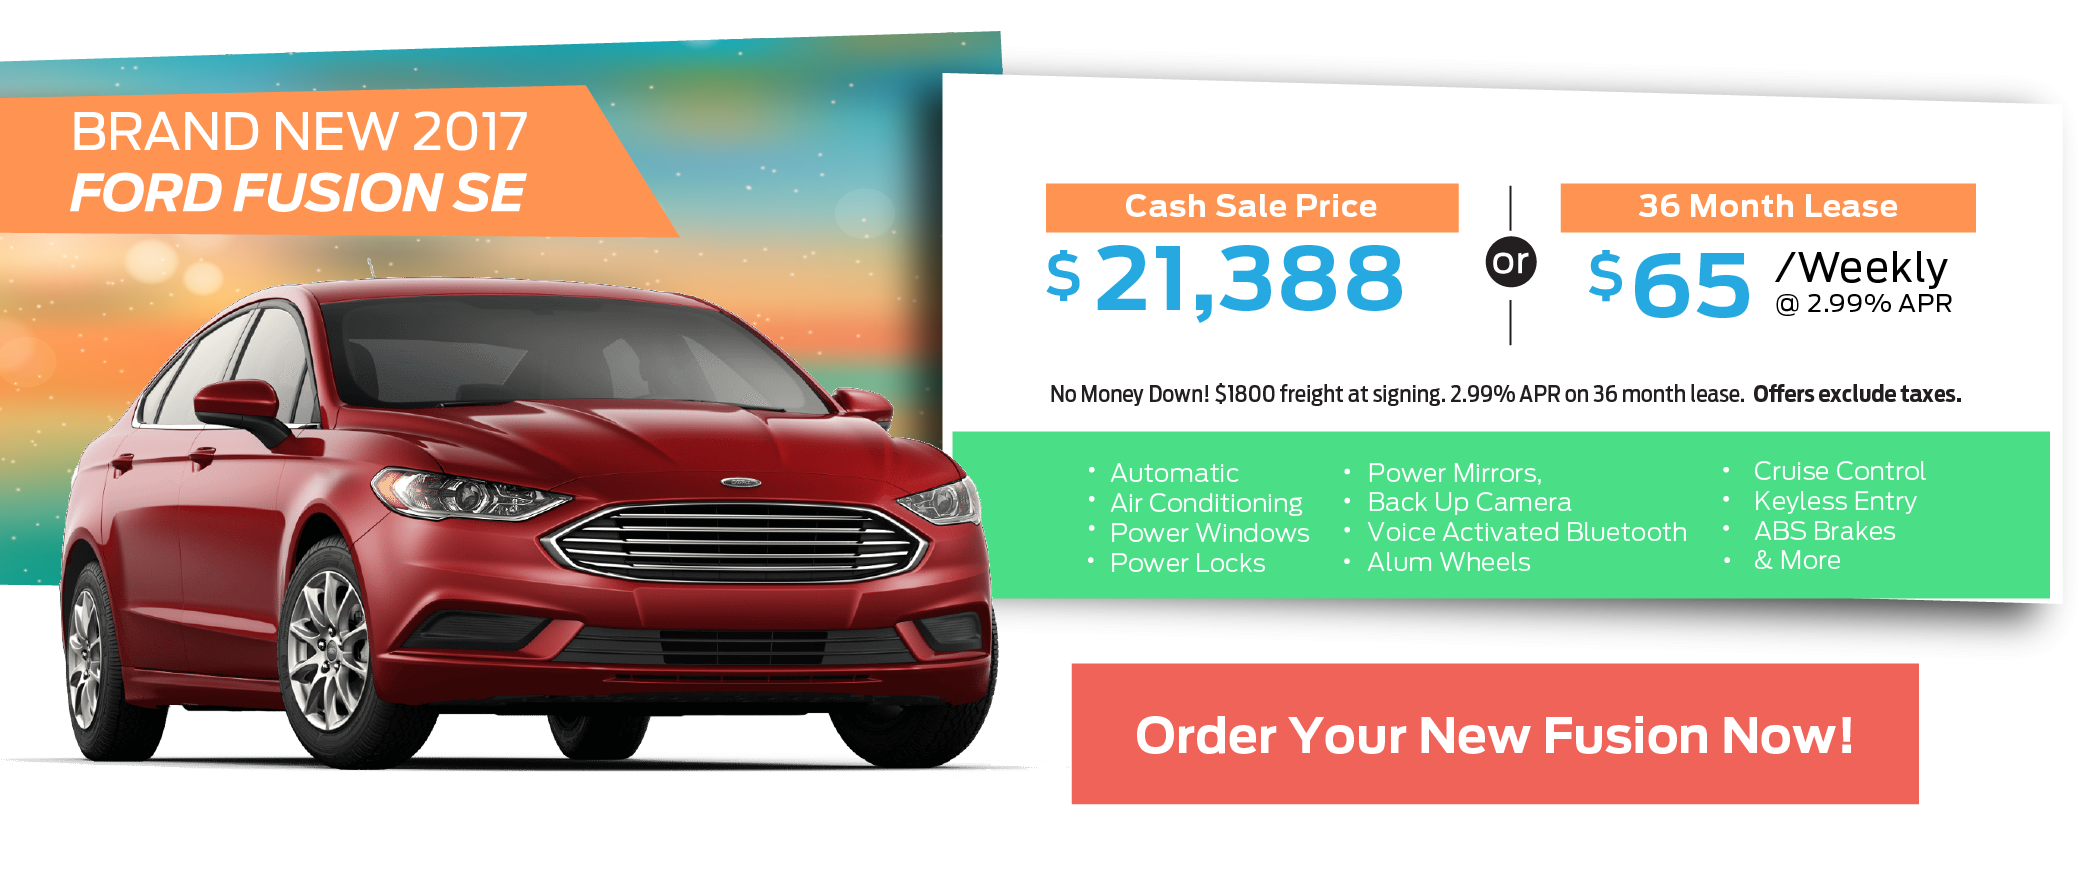 ECFL Sizzling Summer - 2017 Ford Fusion